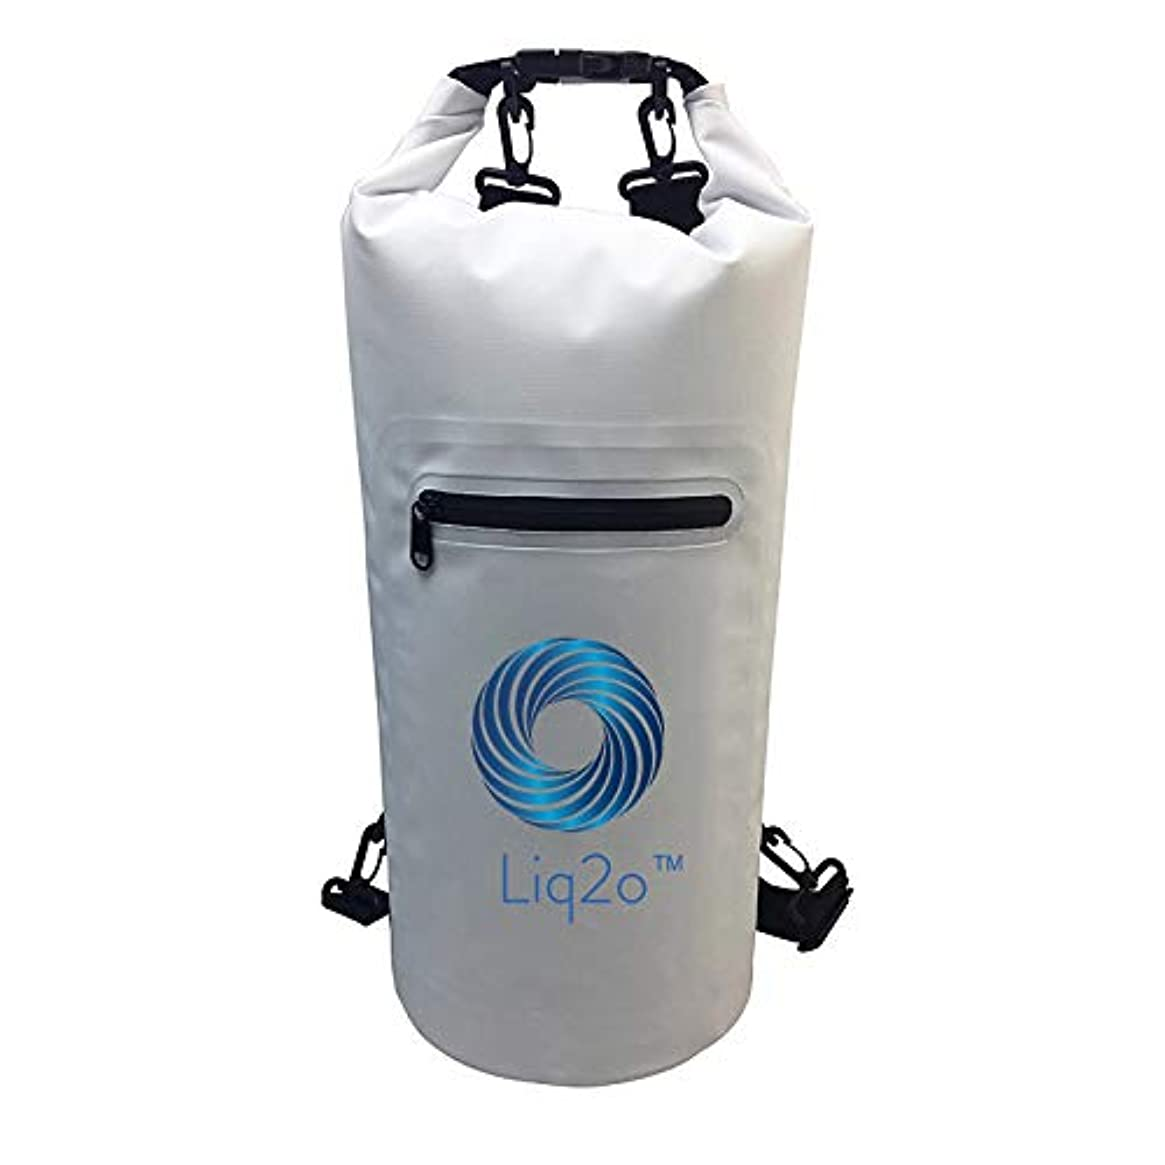 Liq2o Waterproof Dry Bag 20L | Keeps Clothing and Gear from Moisture| Great for Swimming, Kayaking, Surfing, Hiking, or Any Sporting Activity